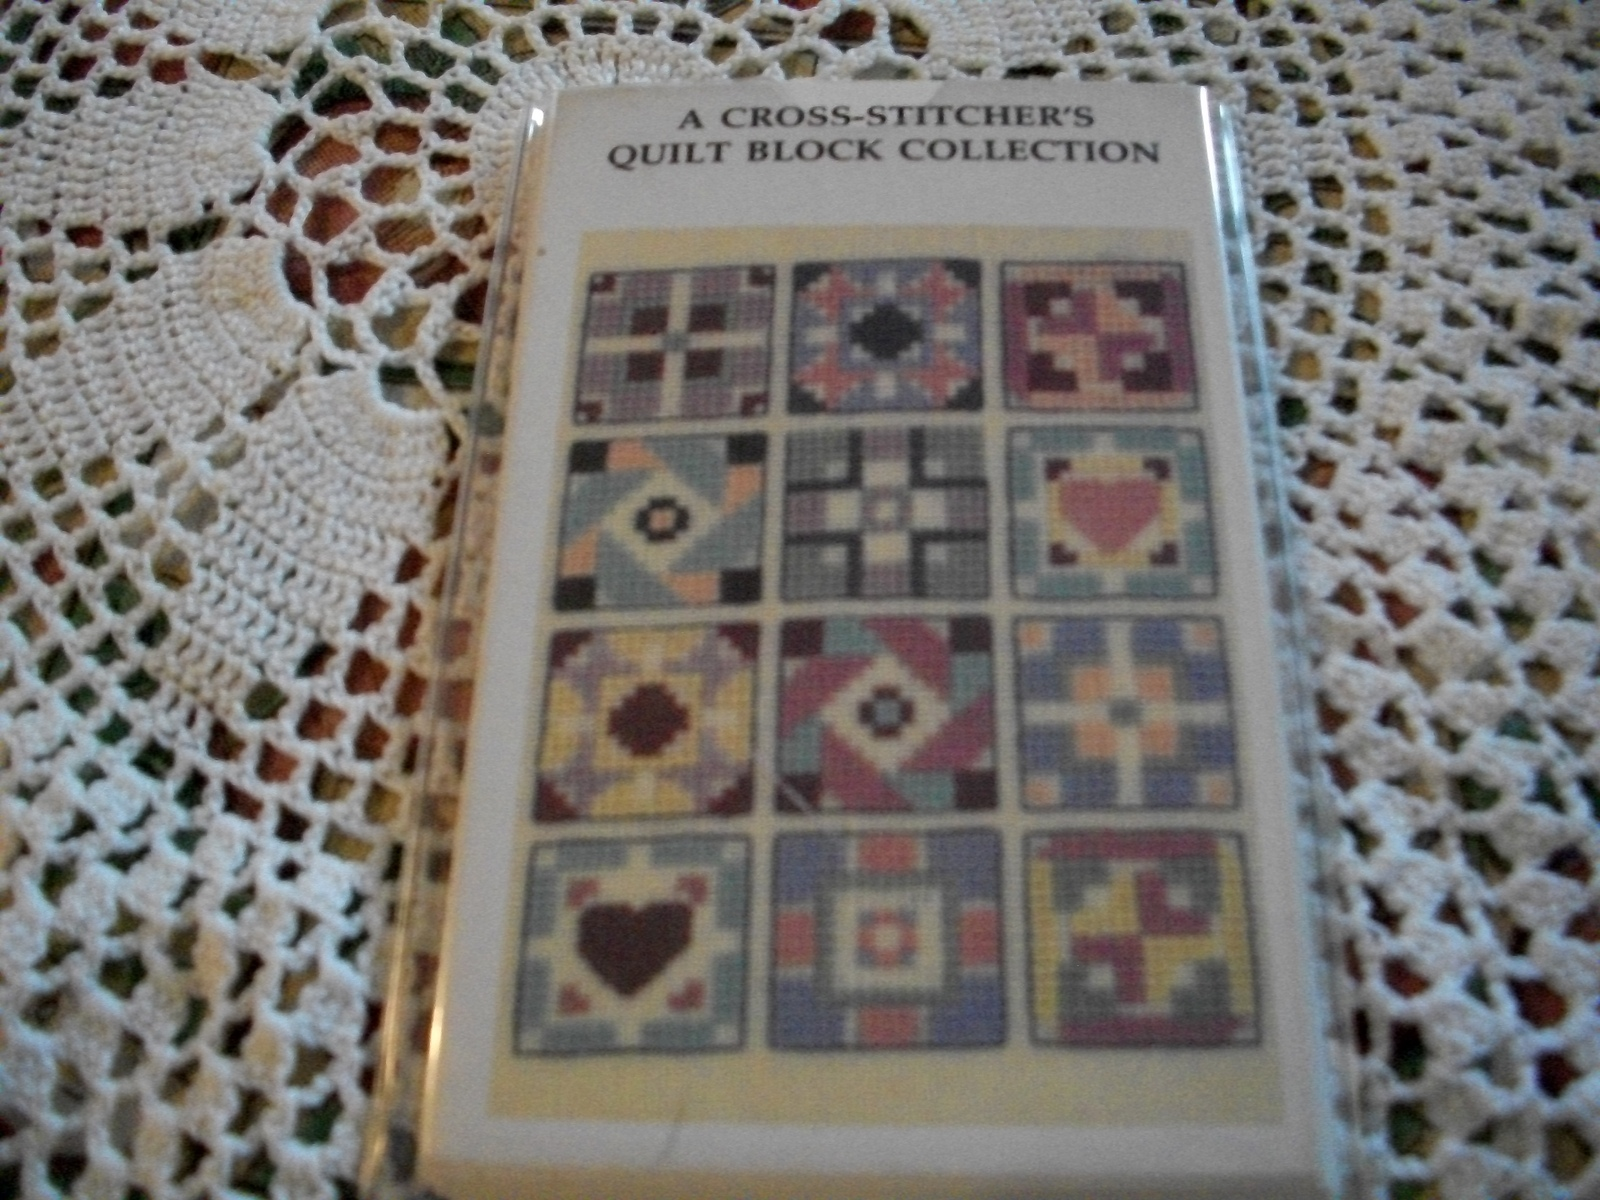 Primary image for A Cross-Stitcher's Quilt Block Collection